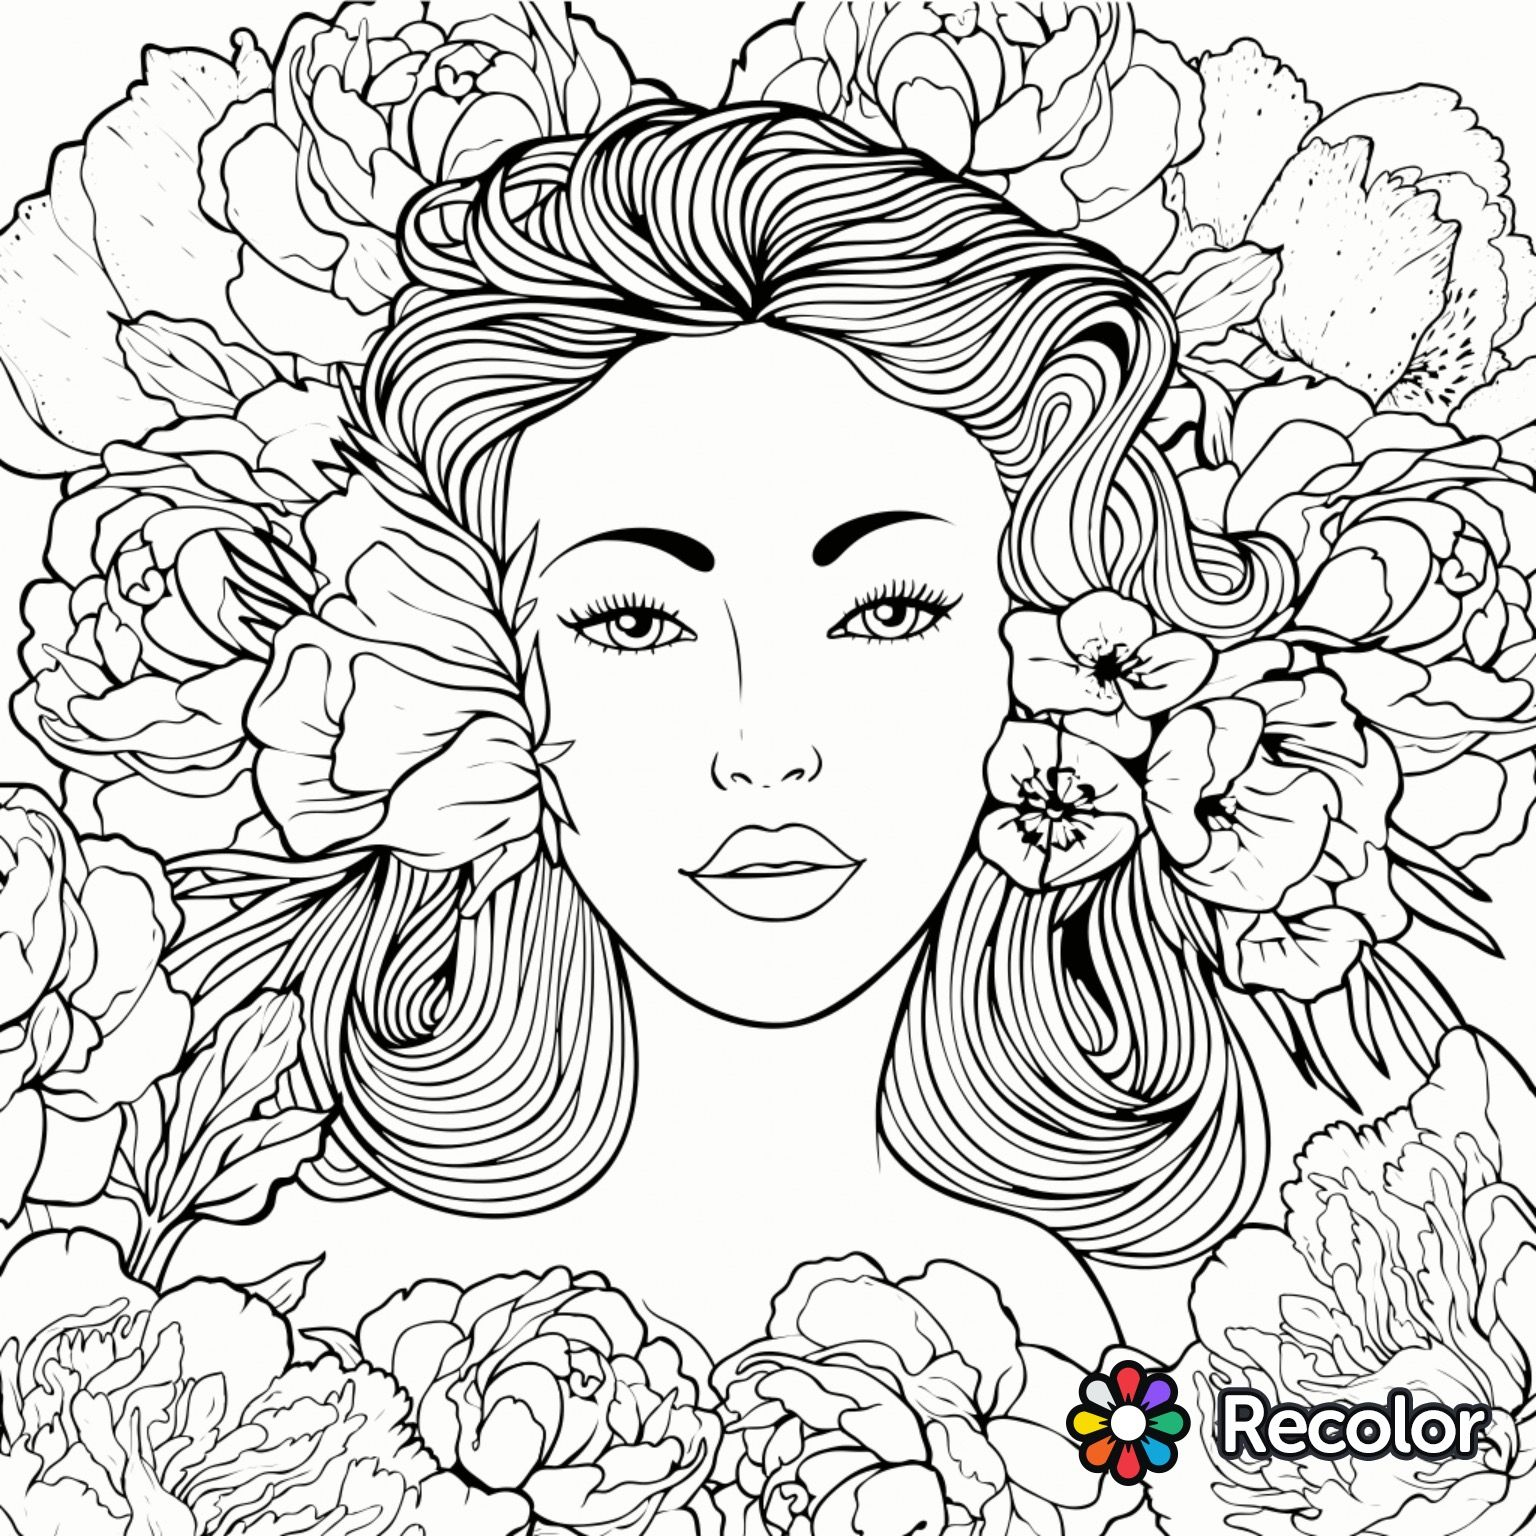 Beauty coloring page | Recolor app | Beautiful Women Coloring Pages ...